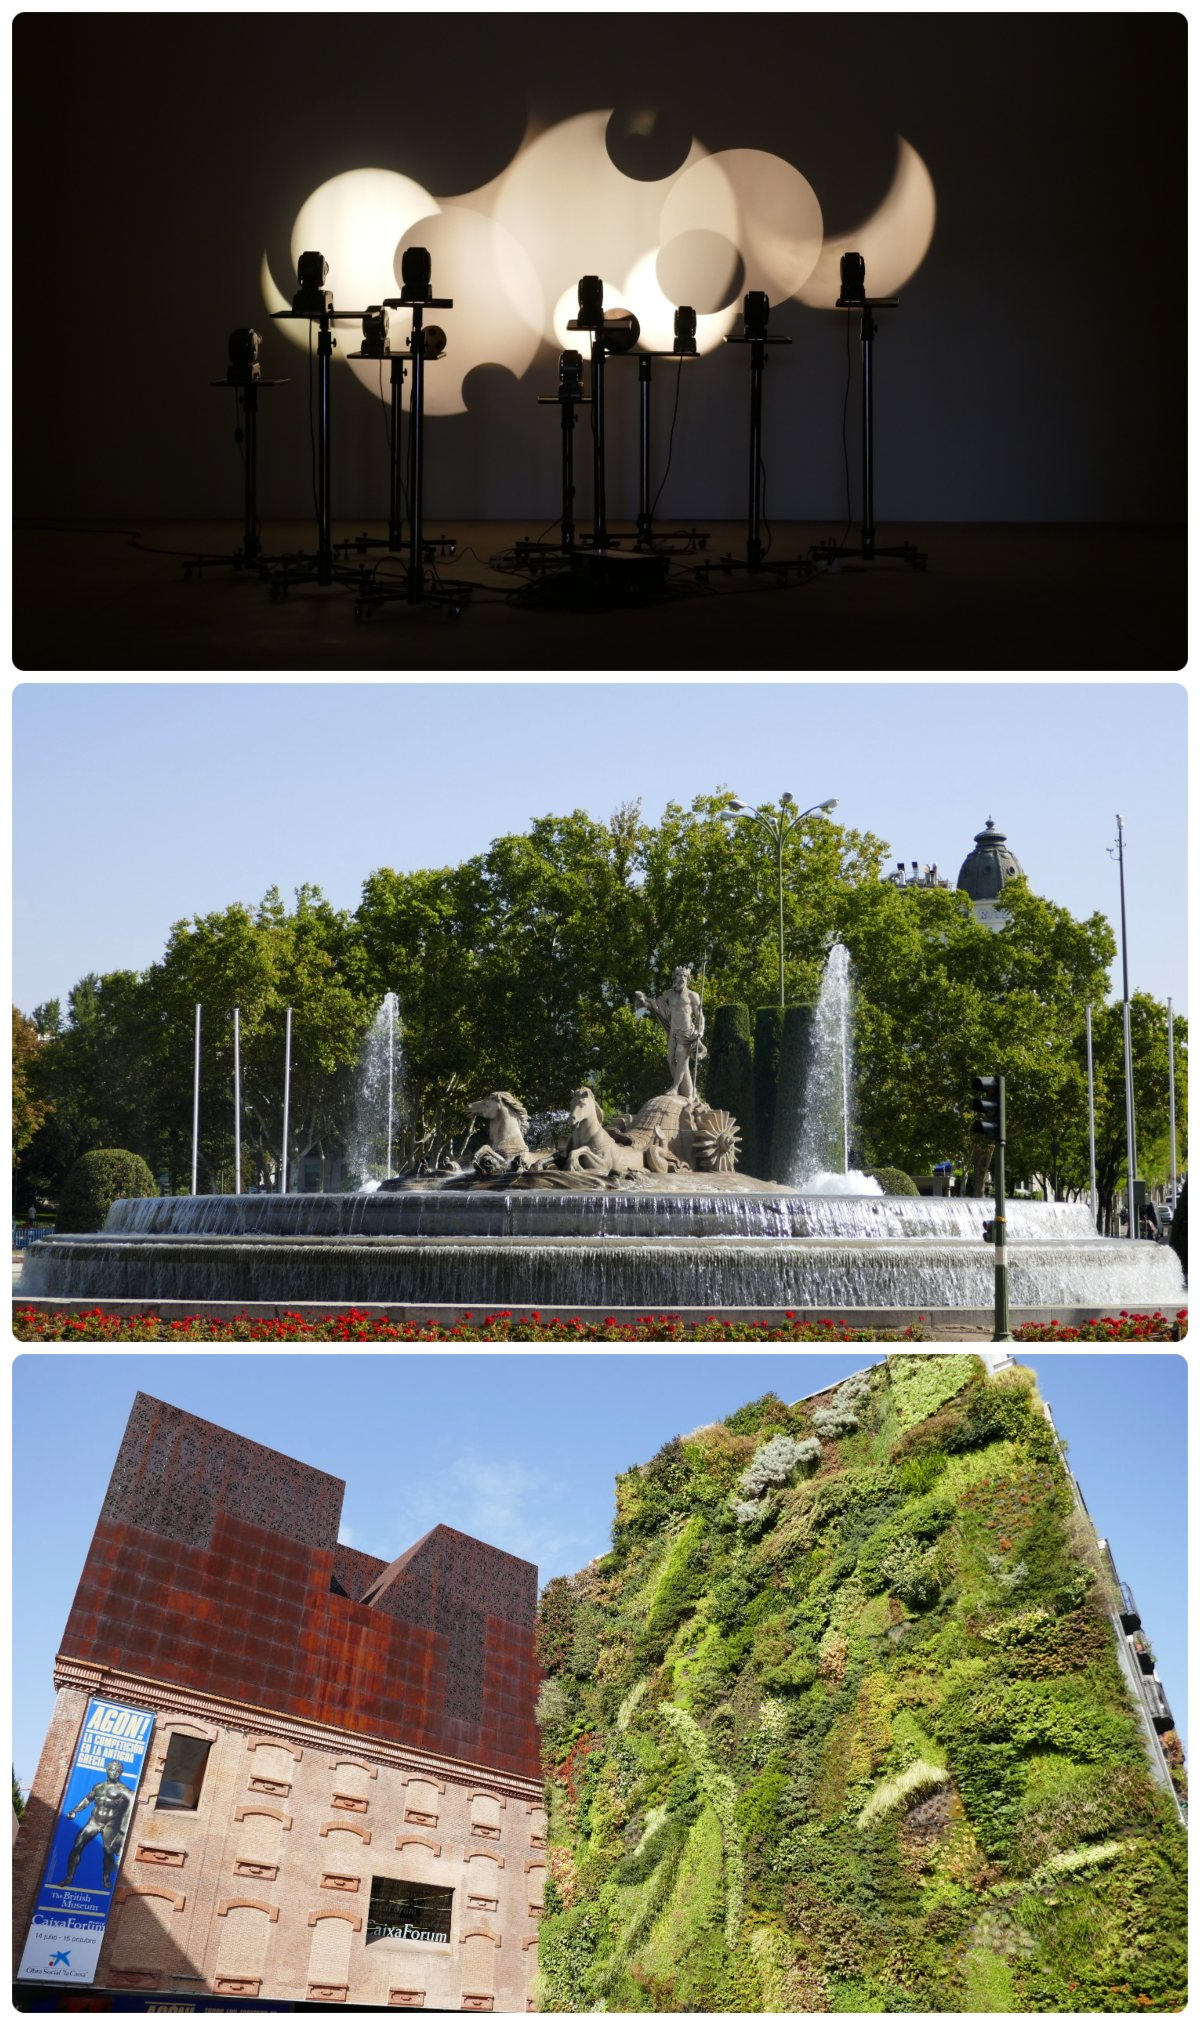 Madrid, Spain. Top to bottom: Promotion of Art (Tabacalera Promoción del Arte), Neptune Fountain (Fuente de Neptuno), Vertical Garden in CaixaForum (Jardín Vertical CaixaForum).